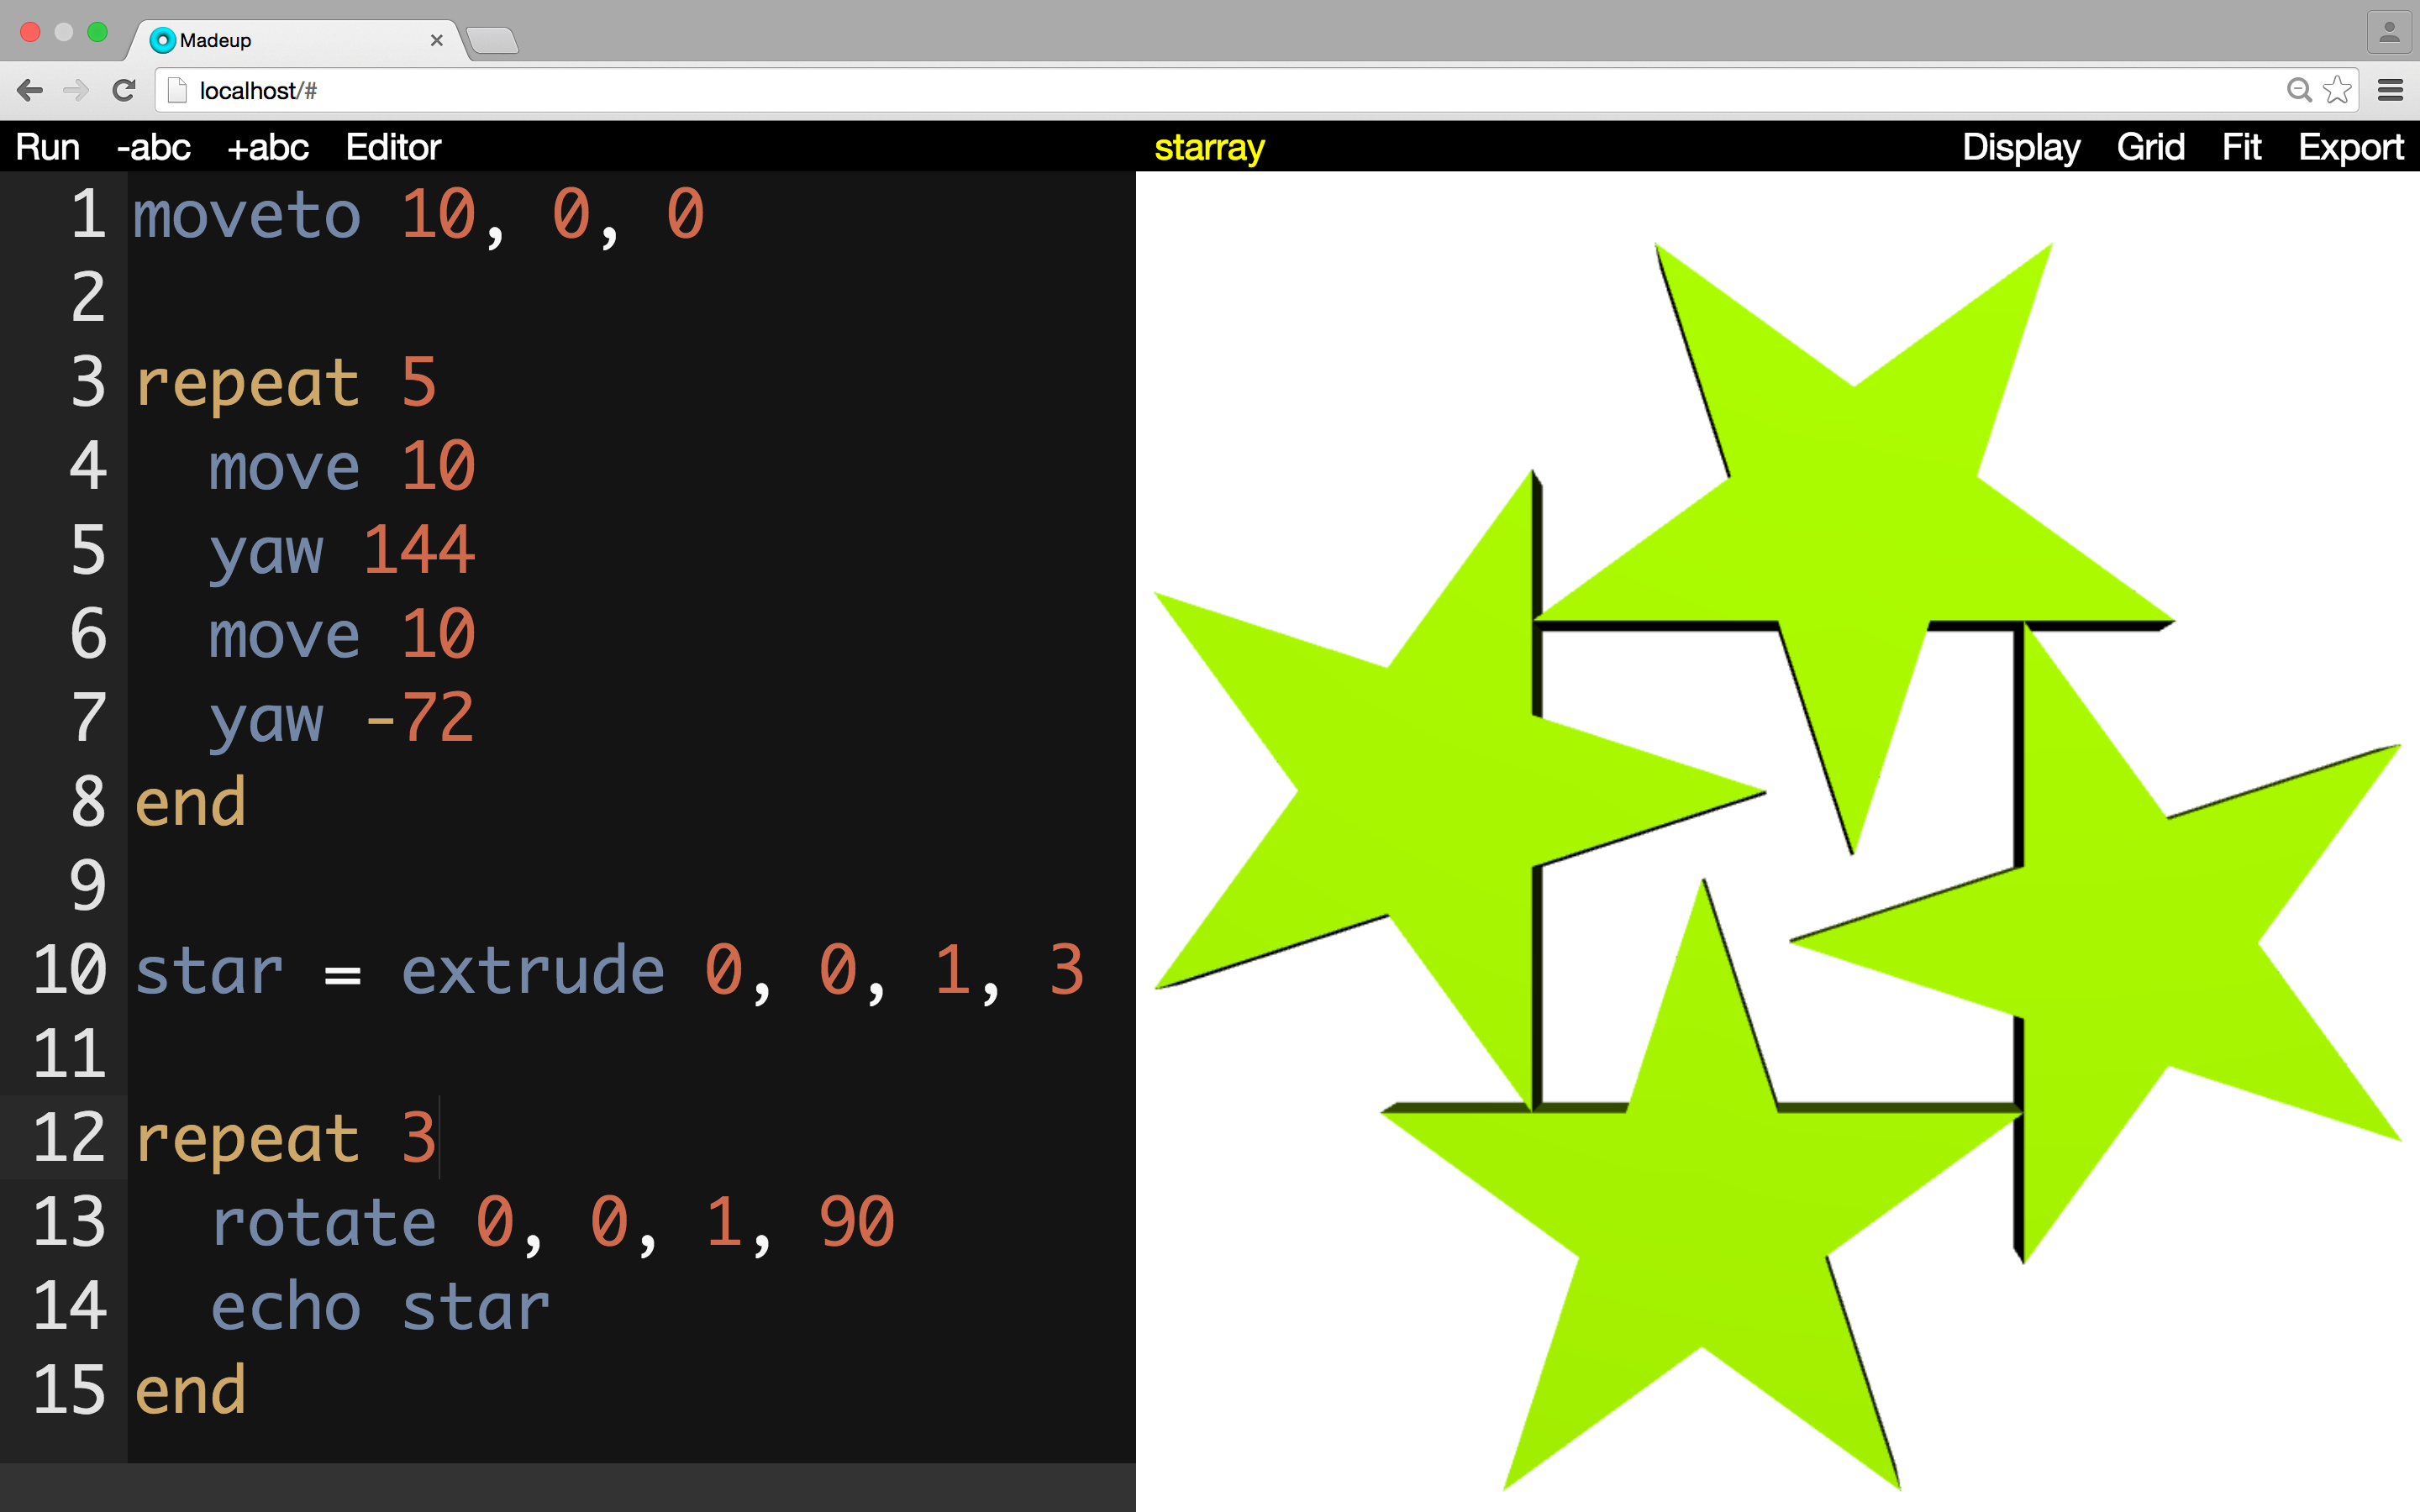 We store the extruded star and then reissue it a few more times under an increasing rotation.